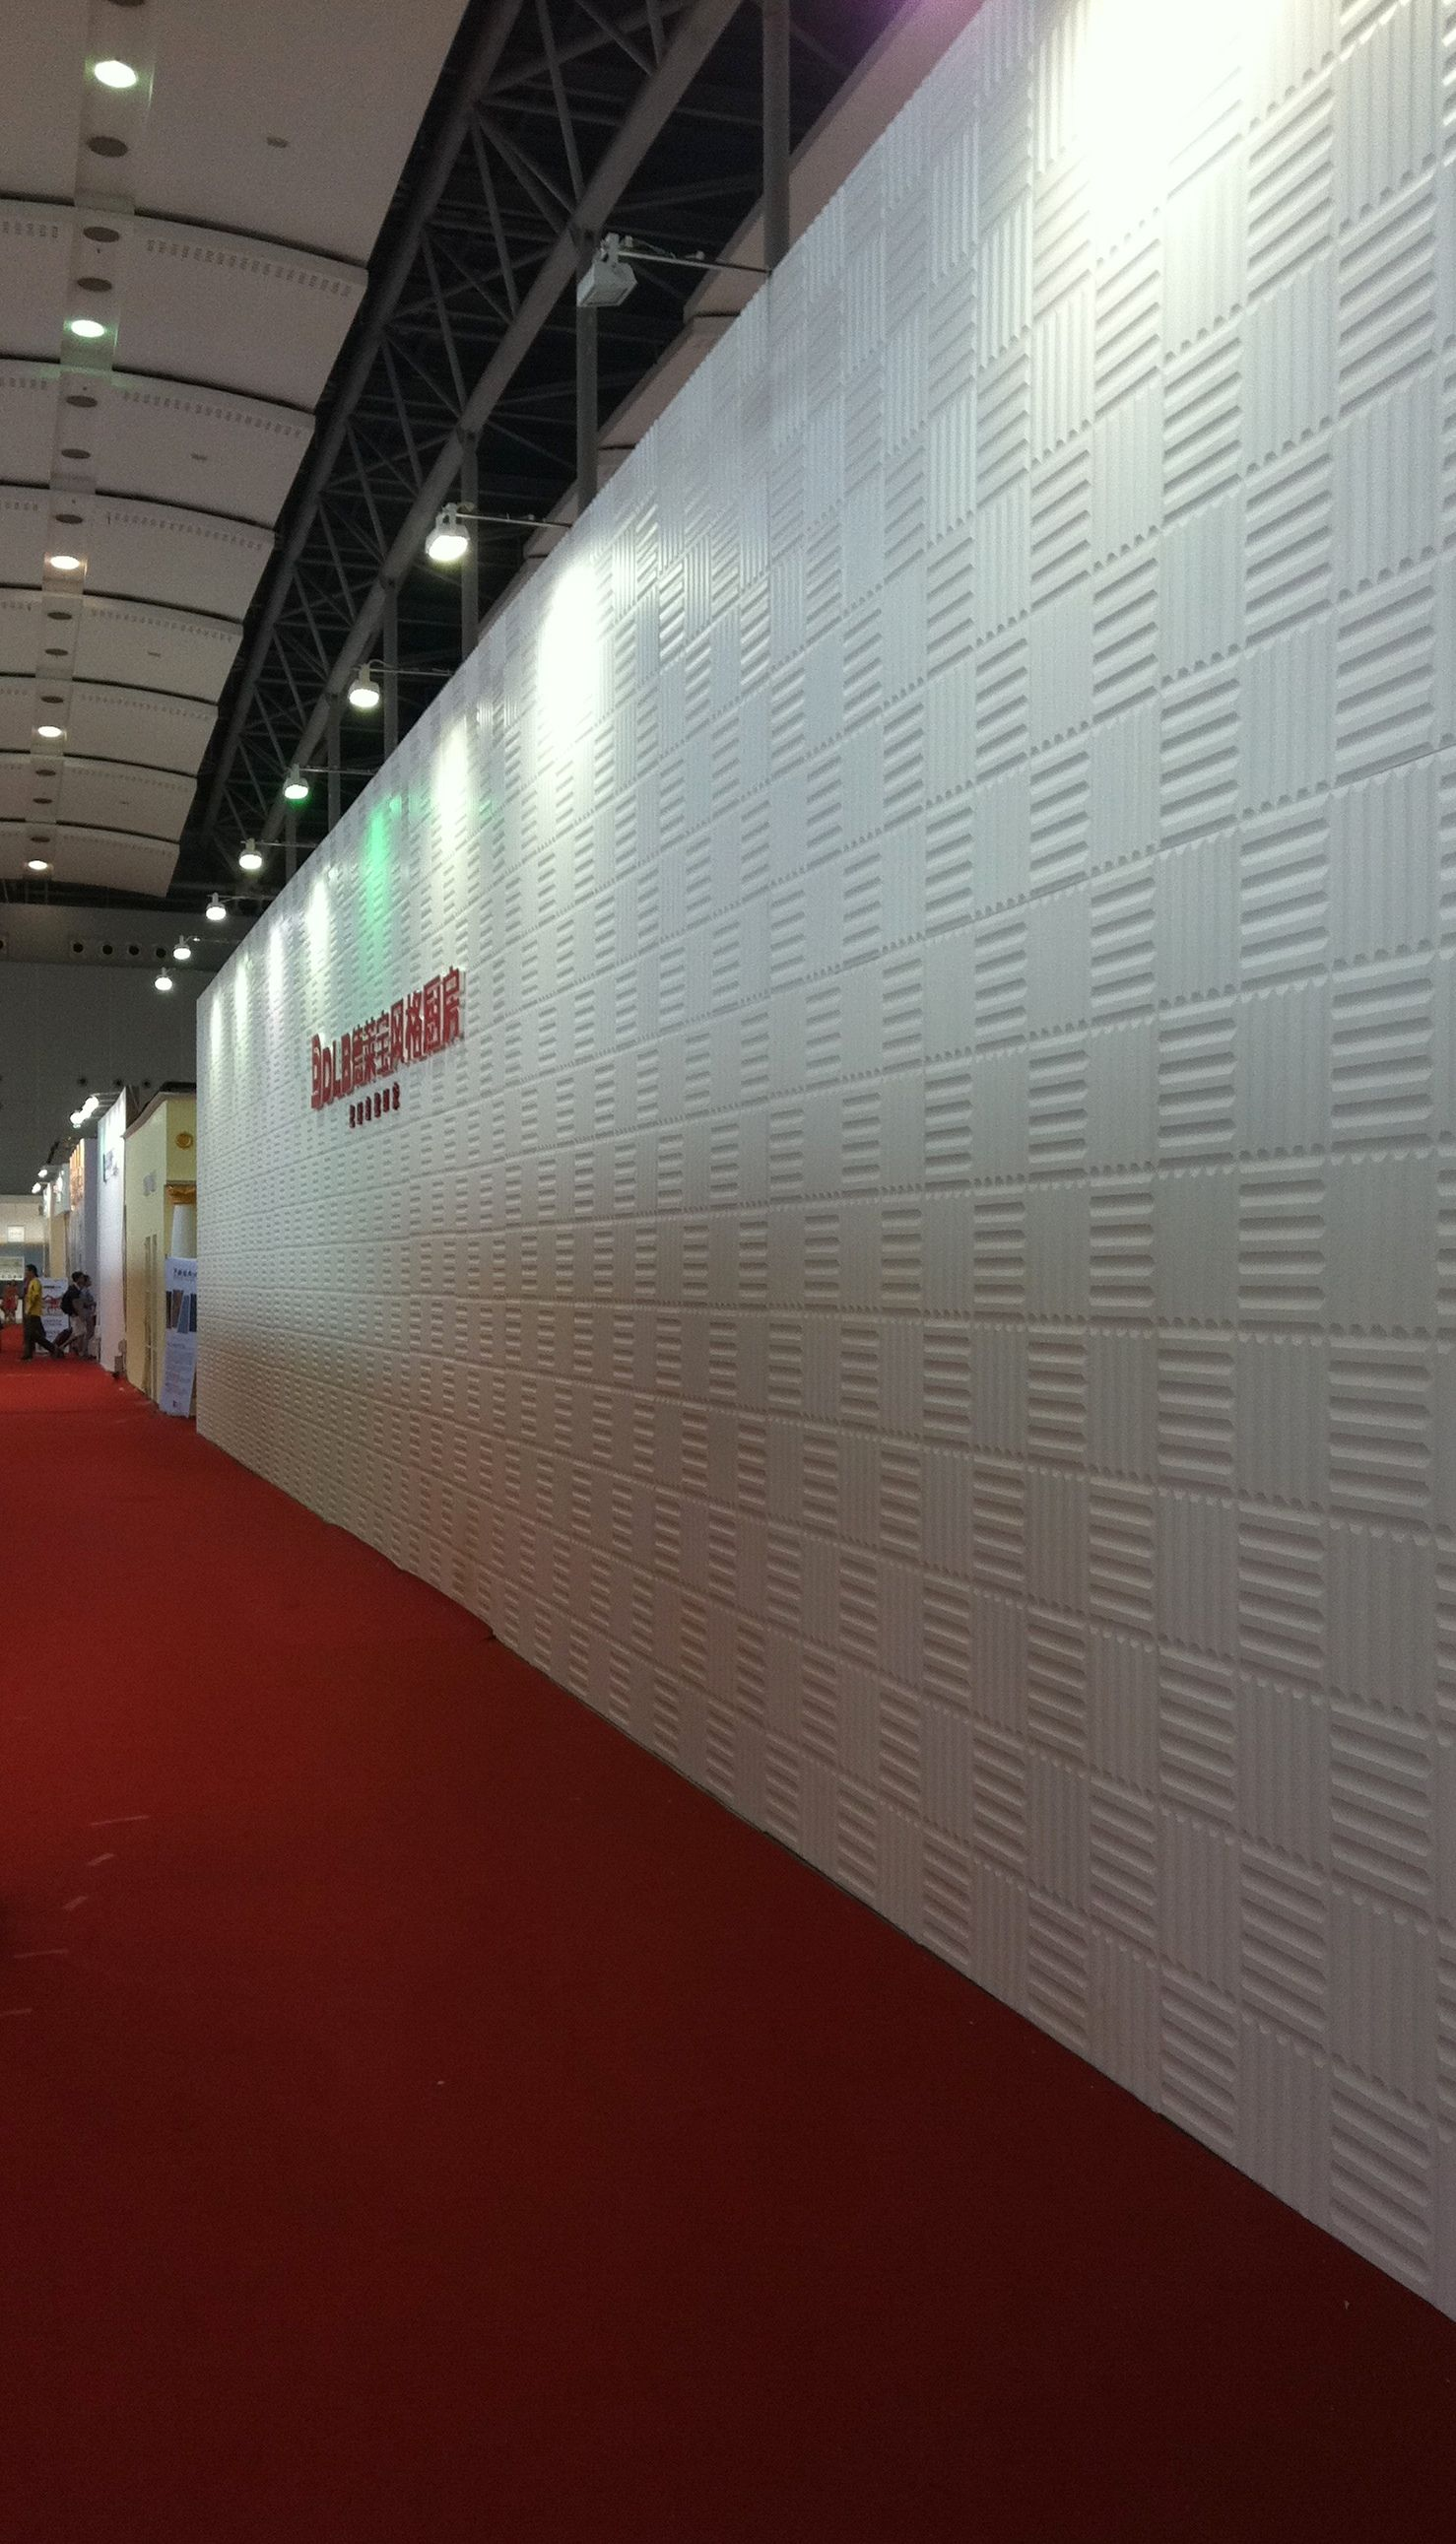 Routed Panel Are An Exciting Range Of Decorative Textured Wall Panels With Patterns Carved Into Their Surf Textured Wall Panels Tv Feature Wall 3d Wall Panels